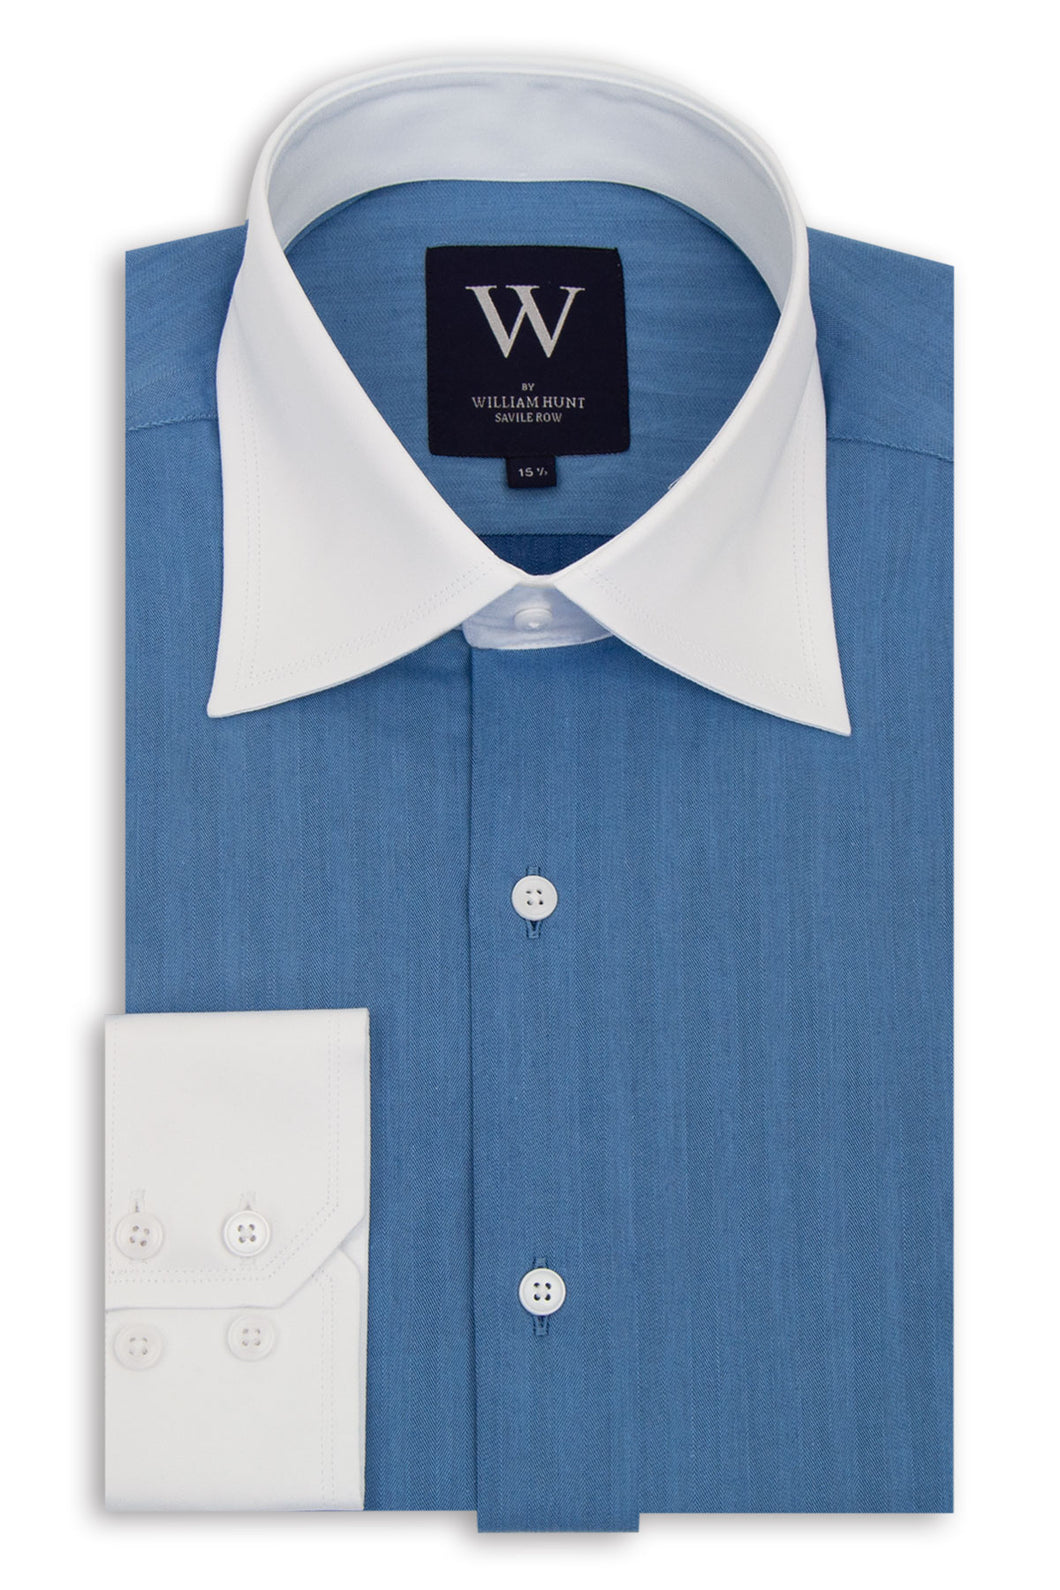 Blue Cutaway Collar Shirt with White Collar